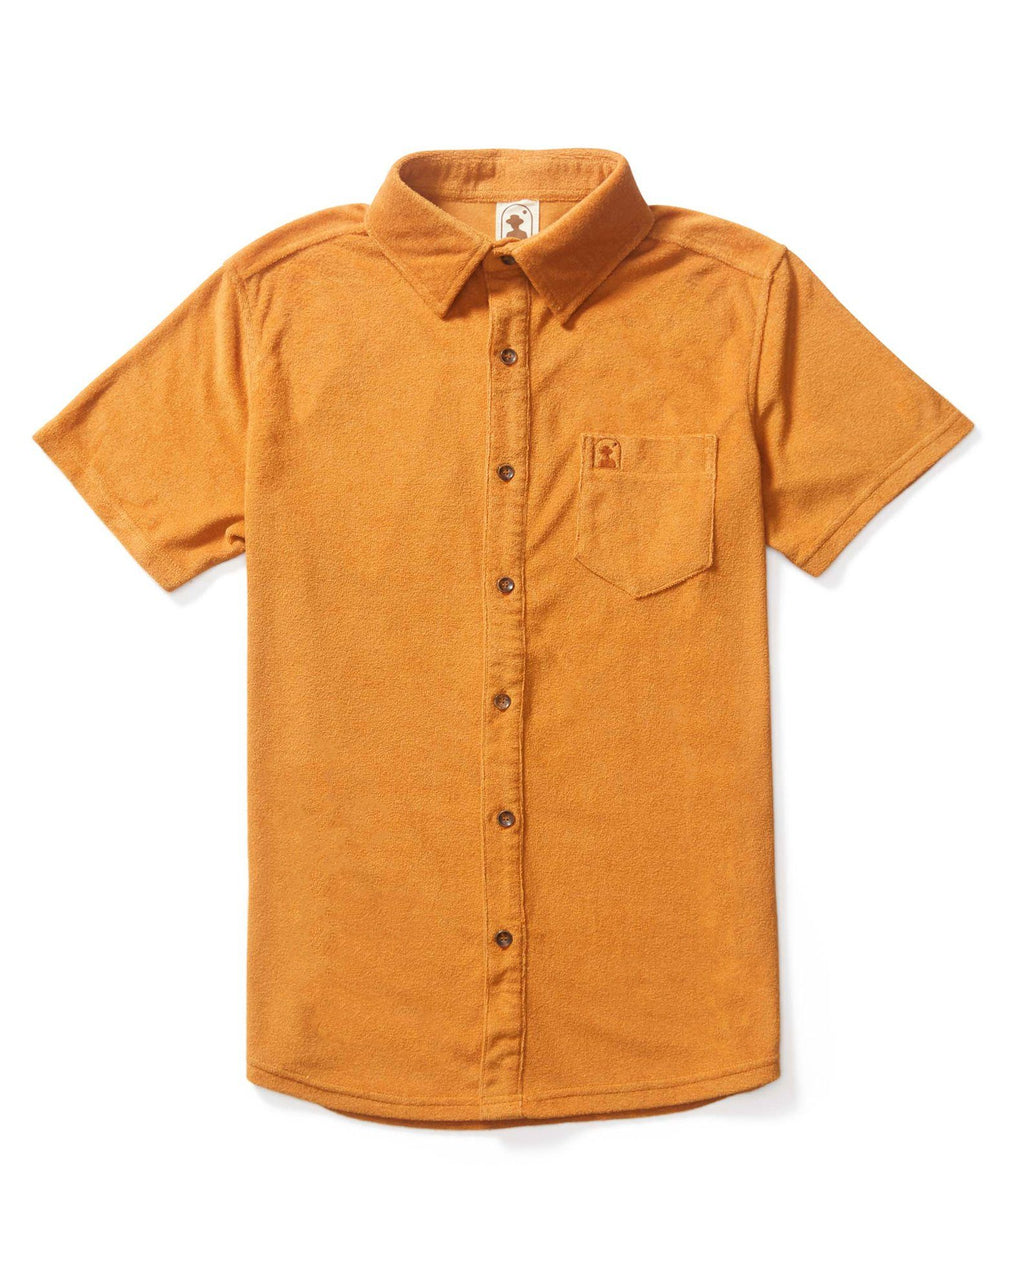 Tropez Shirts - The Tropez Terry Cloth Shirt - Burnt Sienna